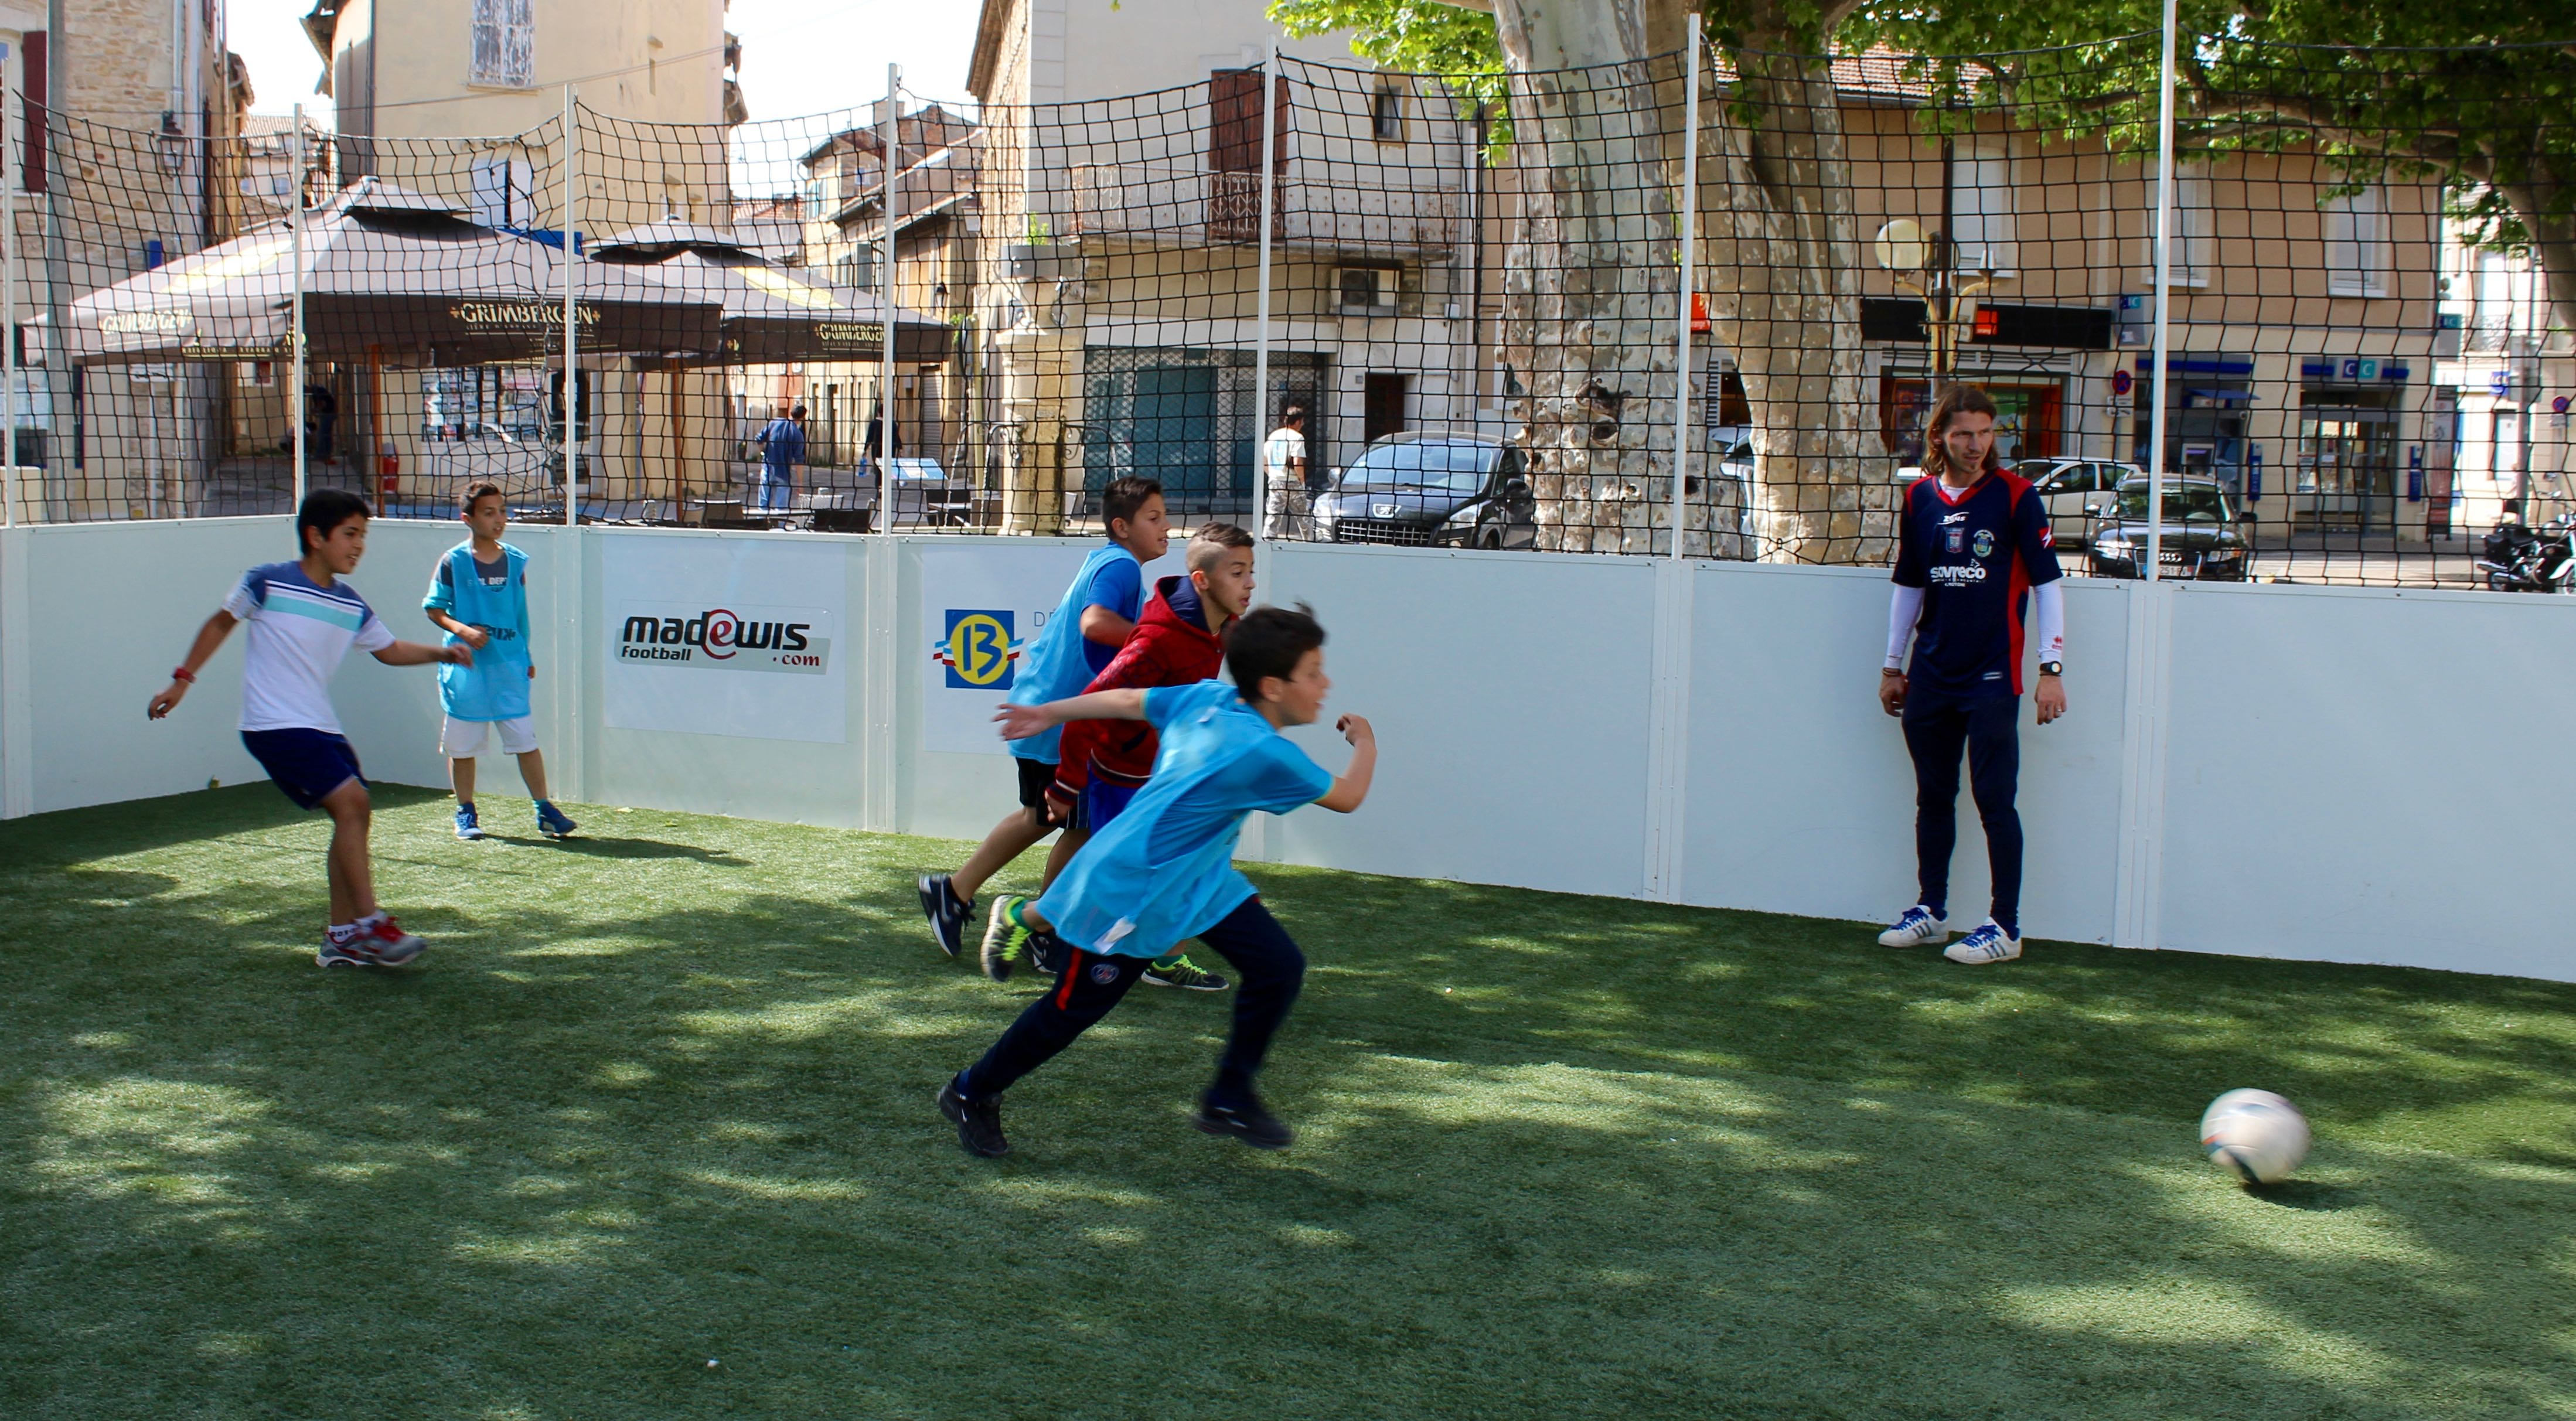 Photo of BAGNOLS Le tournoi inter-quartiers de street-foot se pose en centre-ville